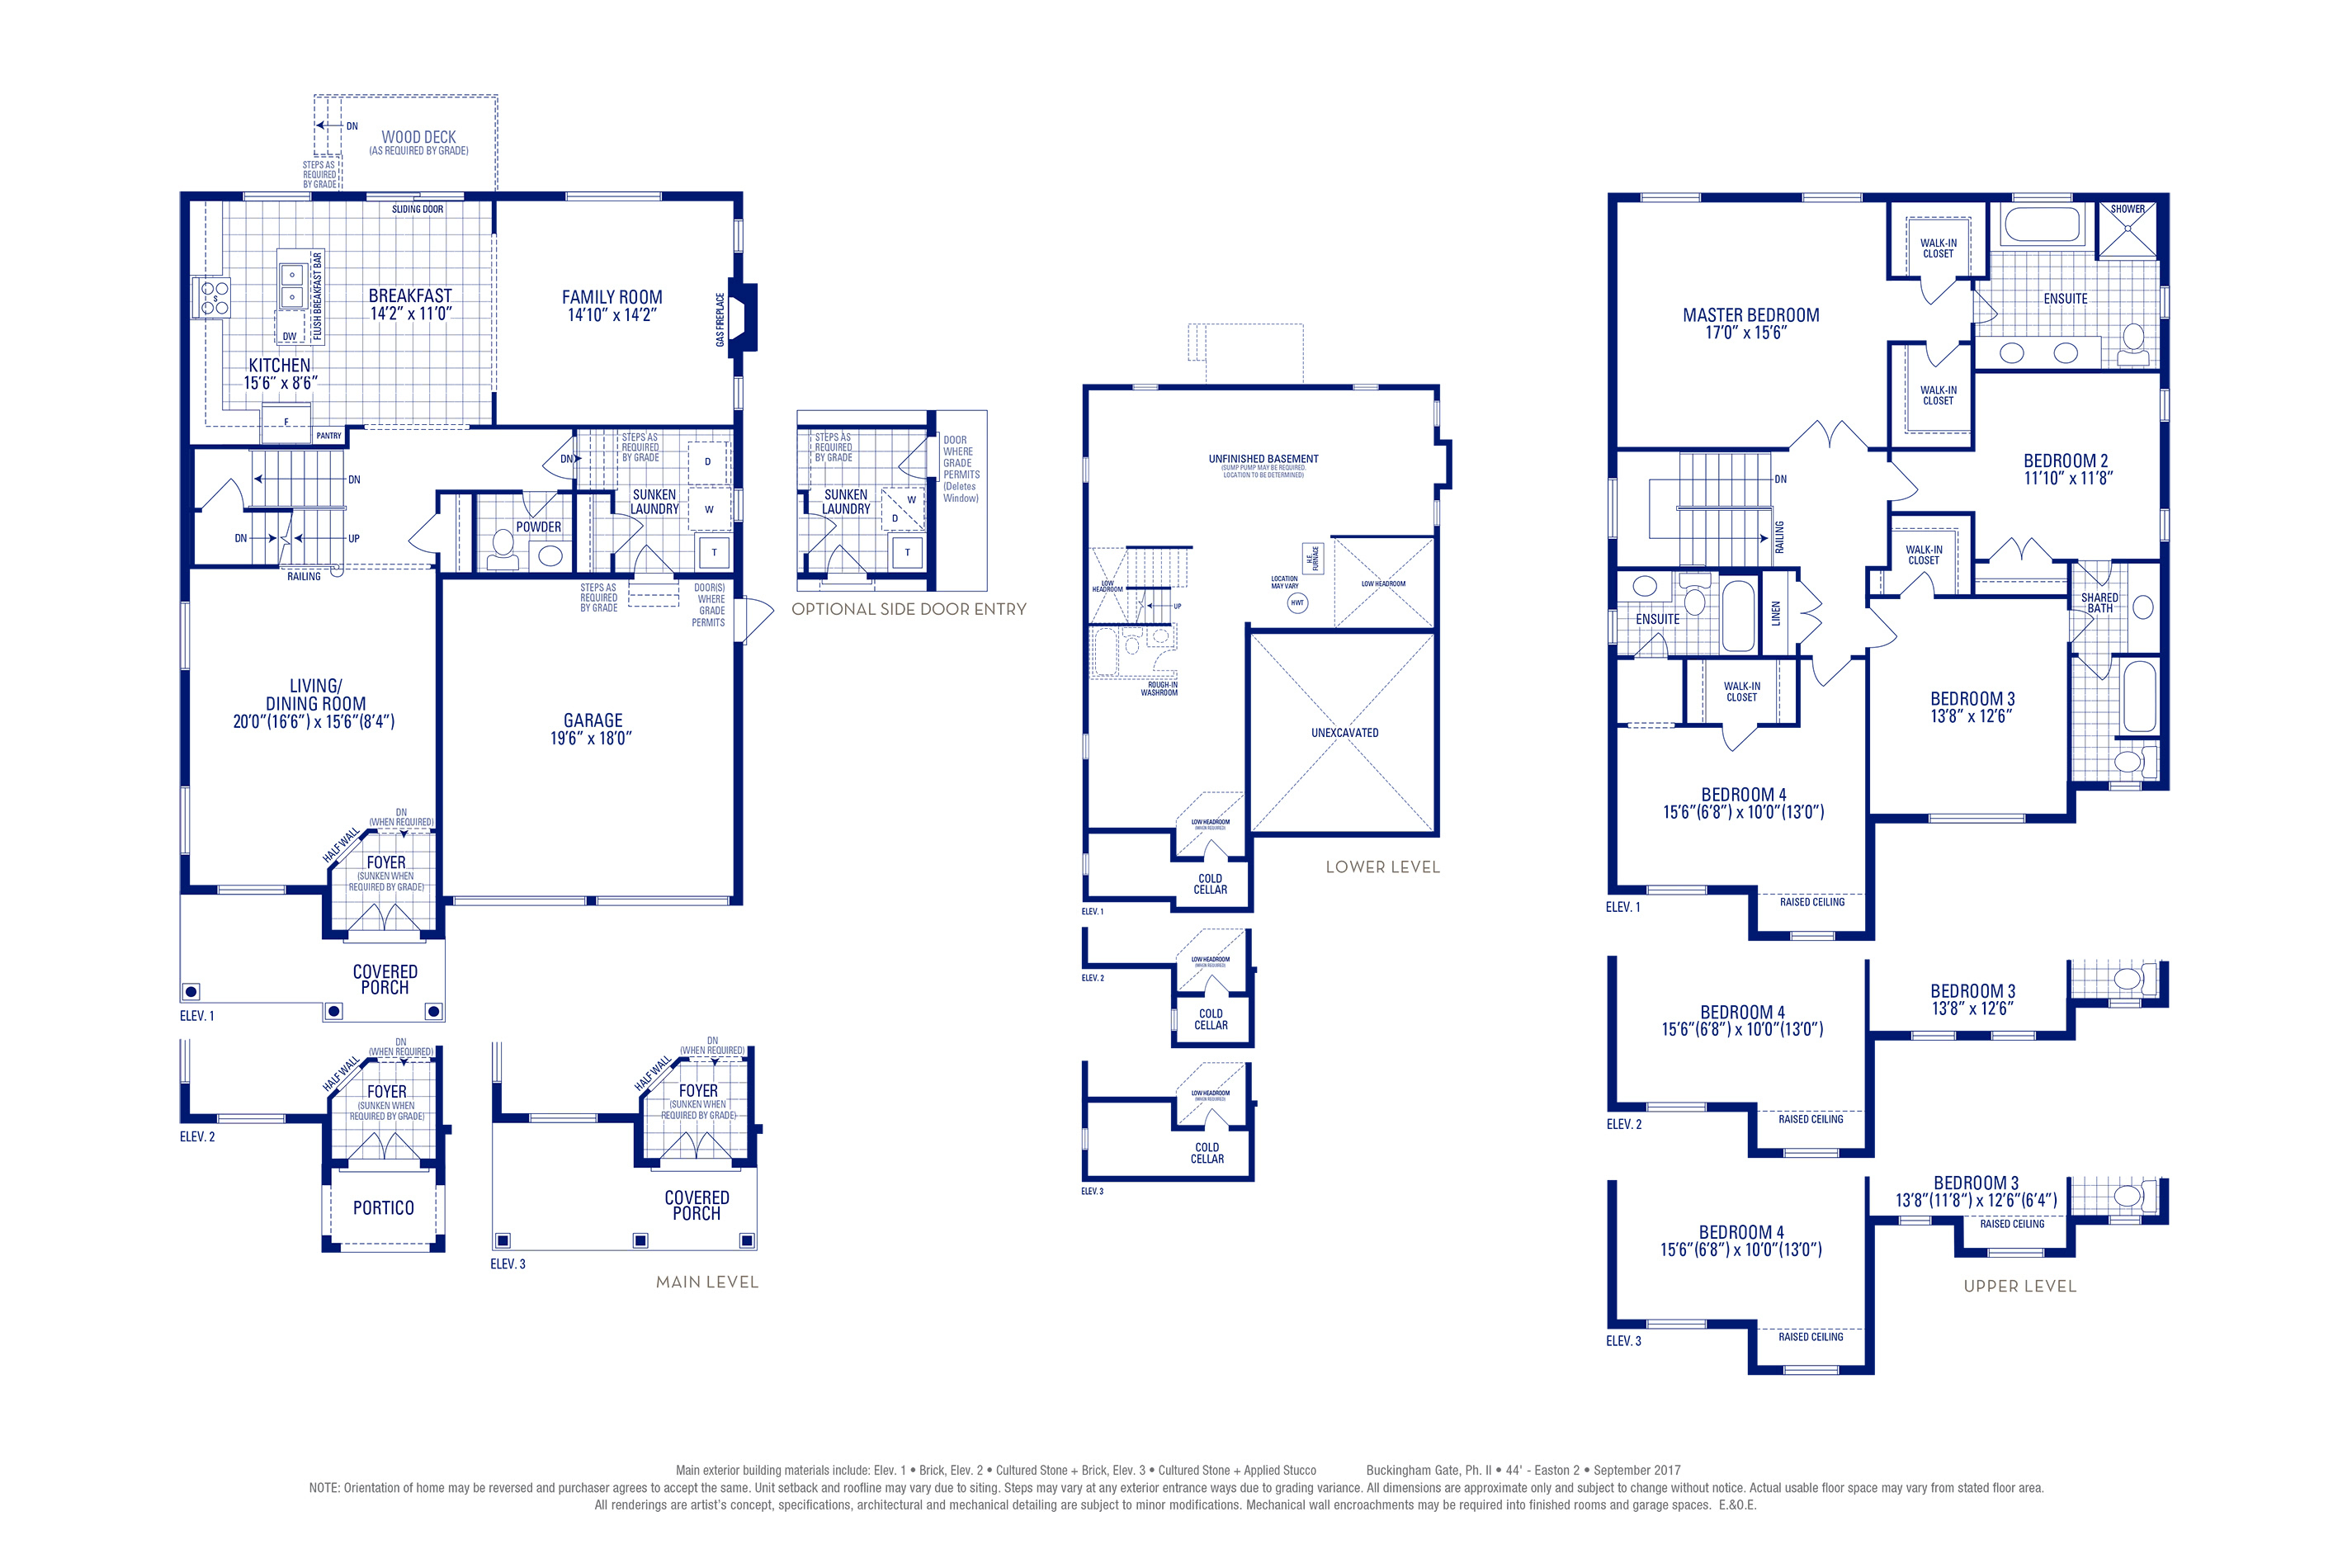 Easton 02 Elev. 2 Floorplan